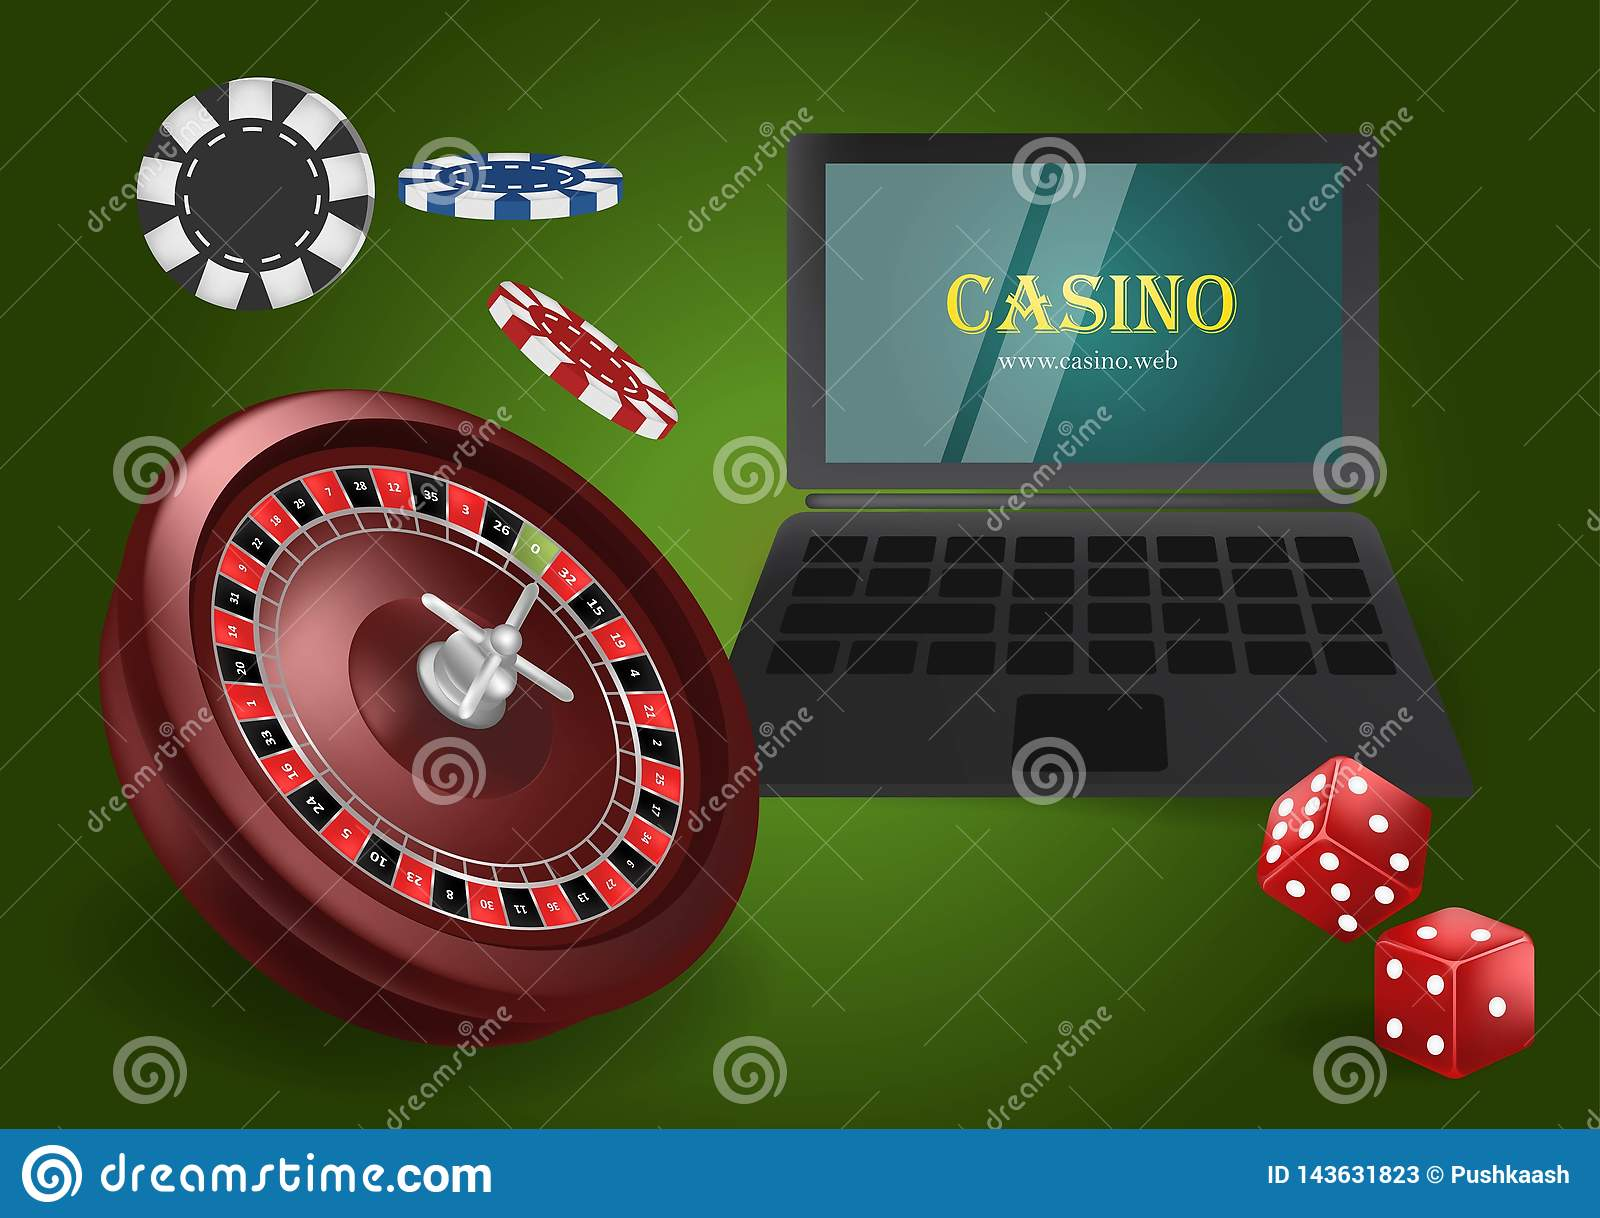 Online casino banner concept with laptop. Poker design or fortune casino gambling. Dice, chips, roulette vector illustration.